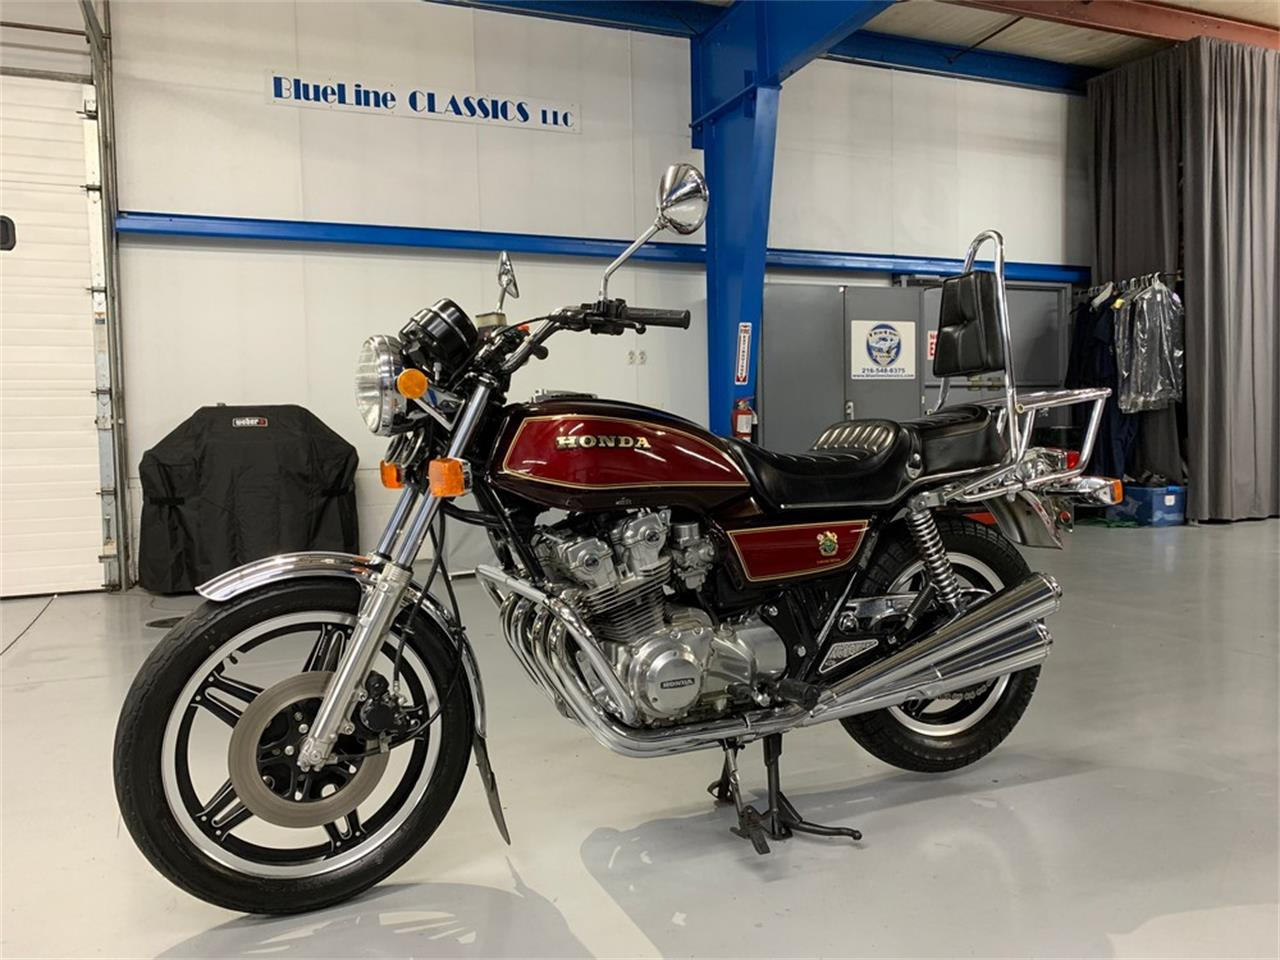 1979 Honda Motorcycle (CC-1441713) for sale in NORTH ROYALTON, OHIO (OH)